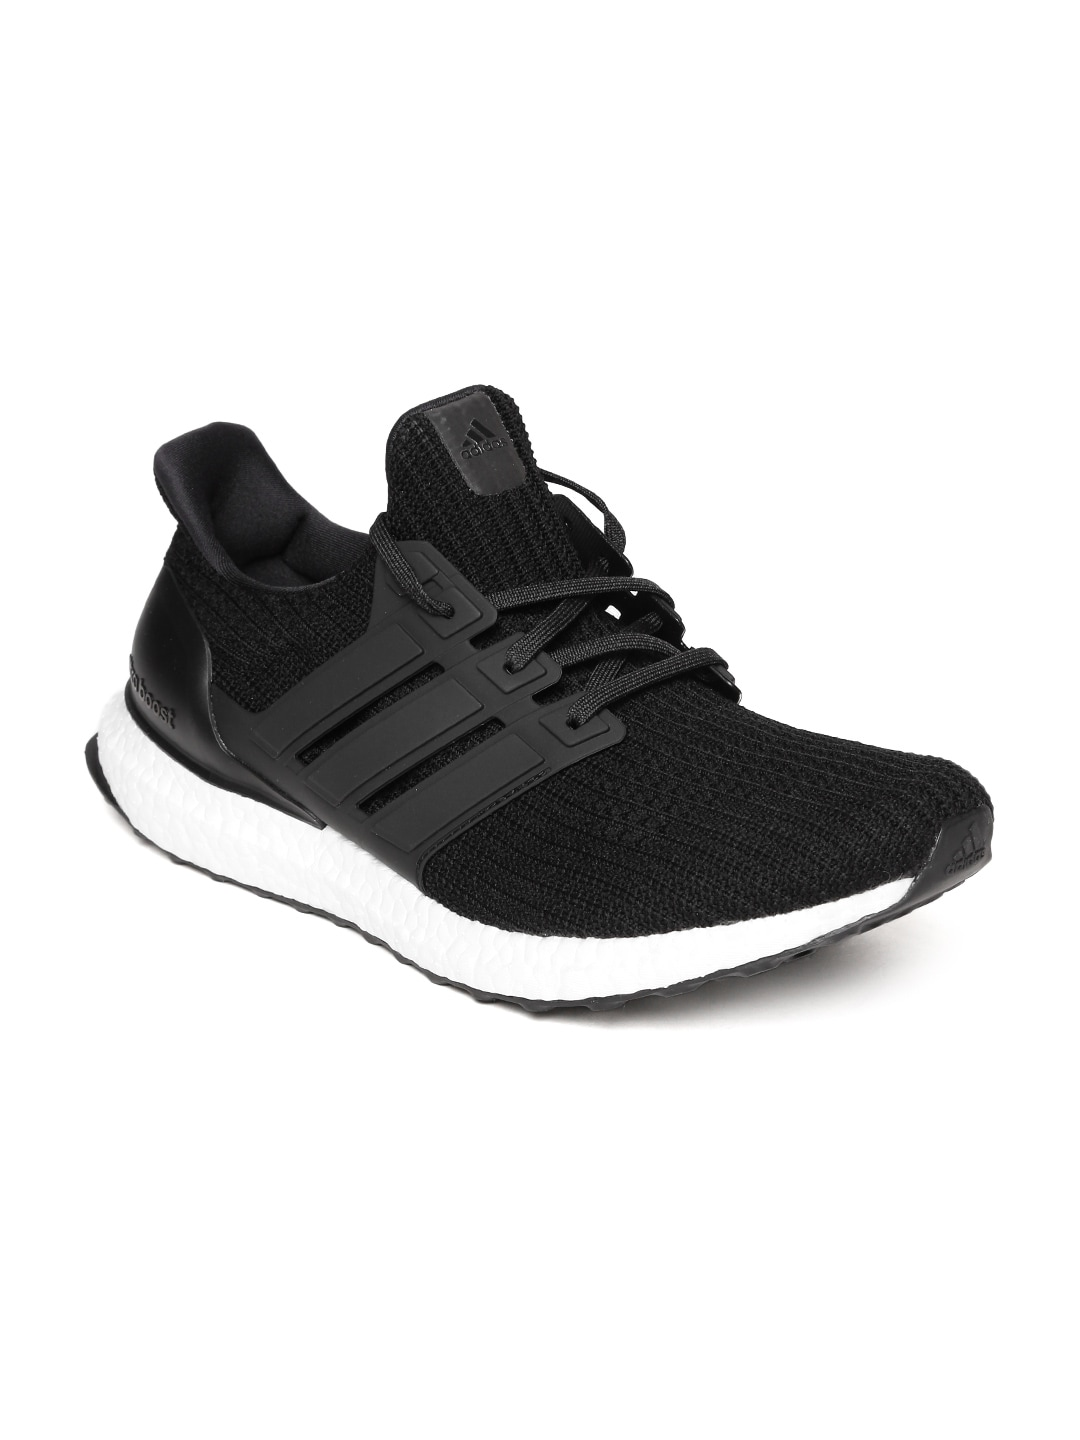 f9ad5b9a01446e Adidas Ultraboost - Buy Adidas Ultraboost online in India